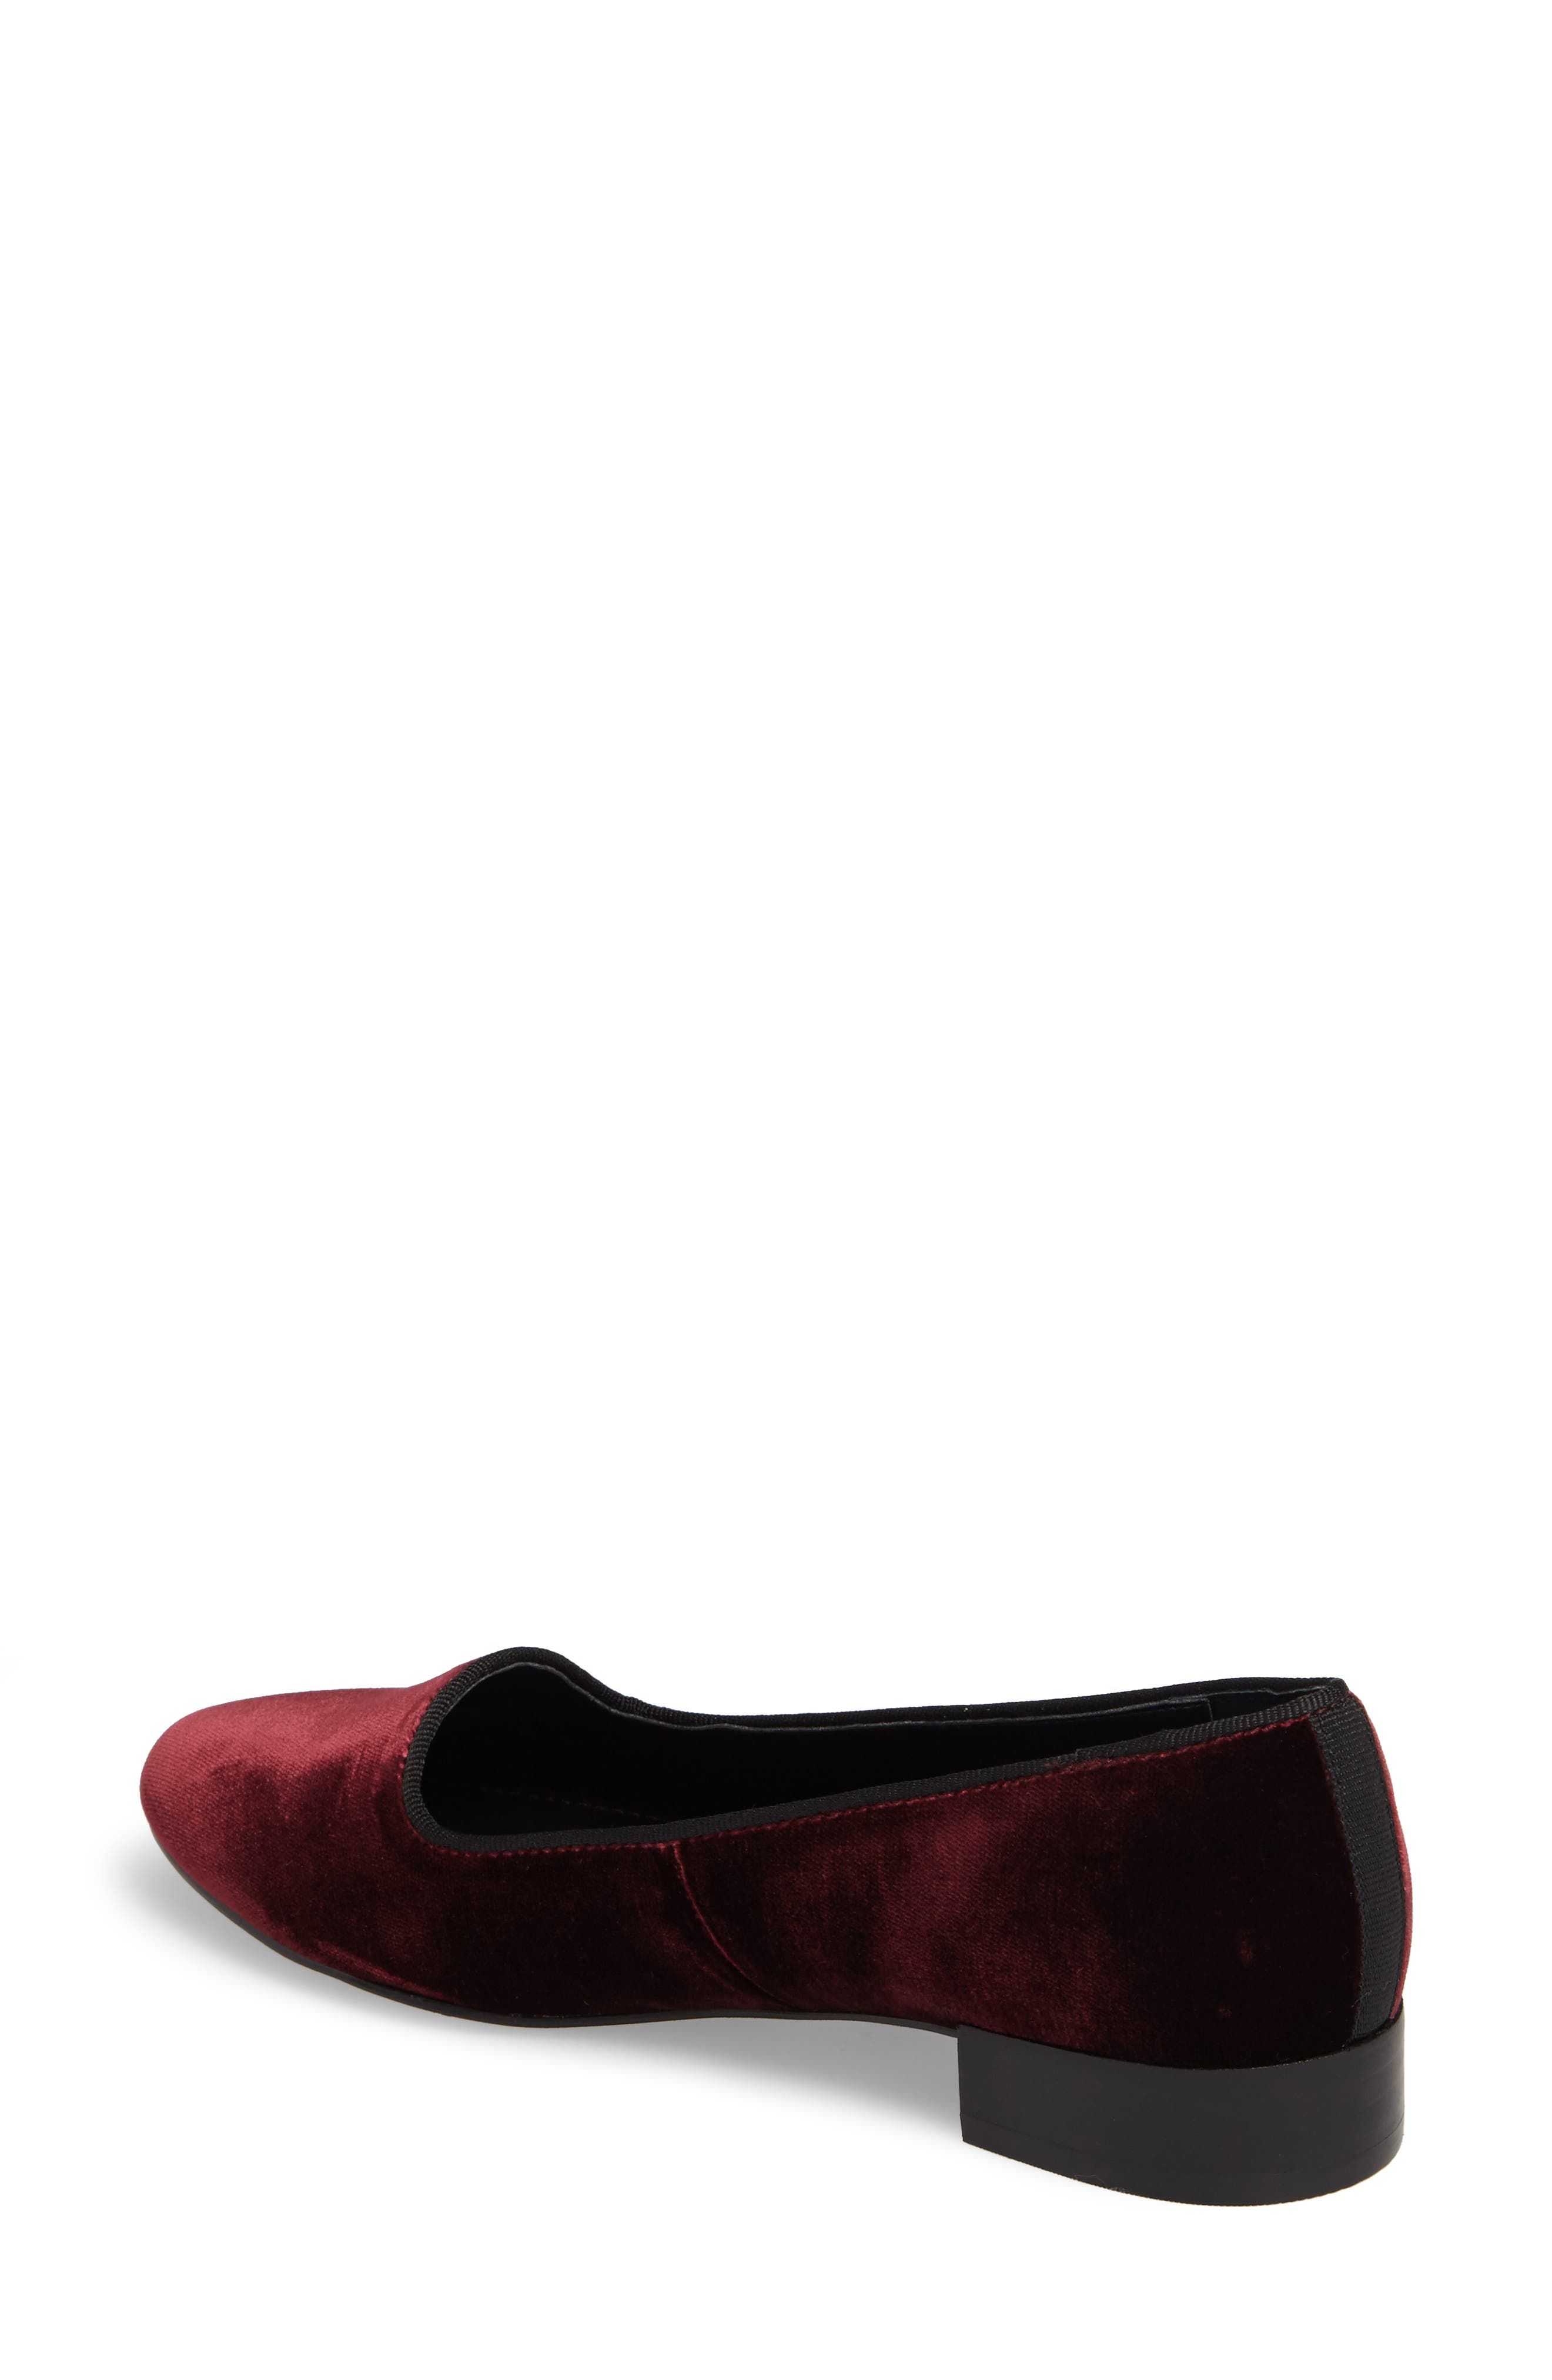 ISOLÁ, Casoria Smoking Slipper, Alternate thumbnail 2, color, BORDEAUX VELVET